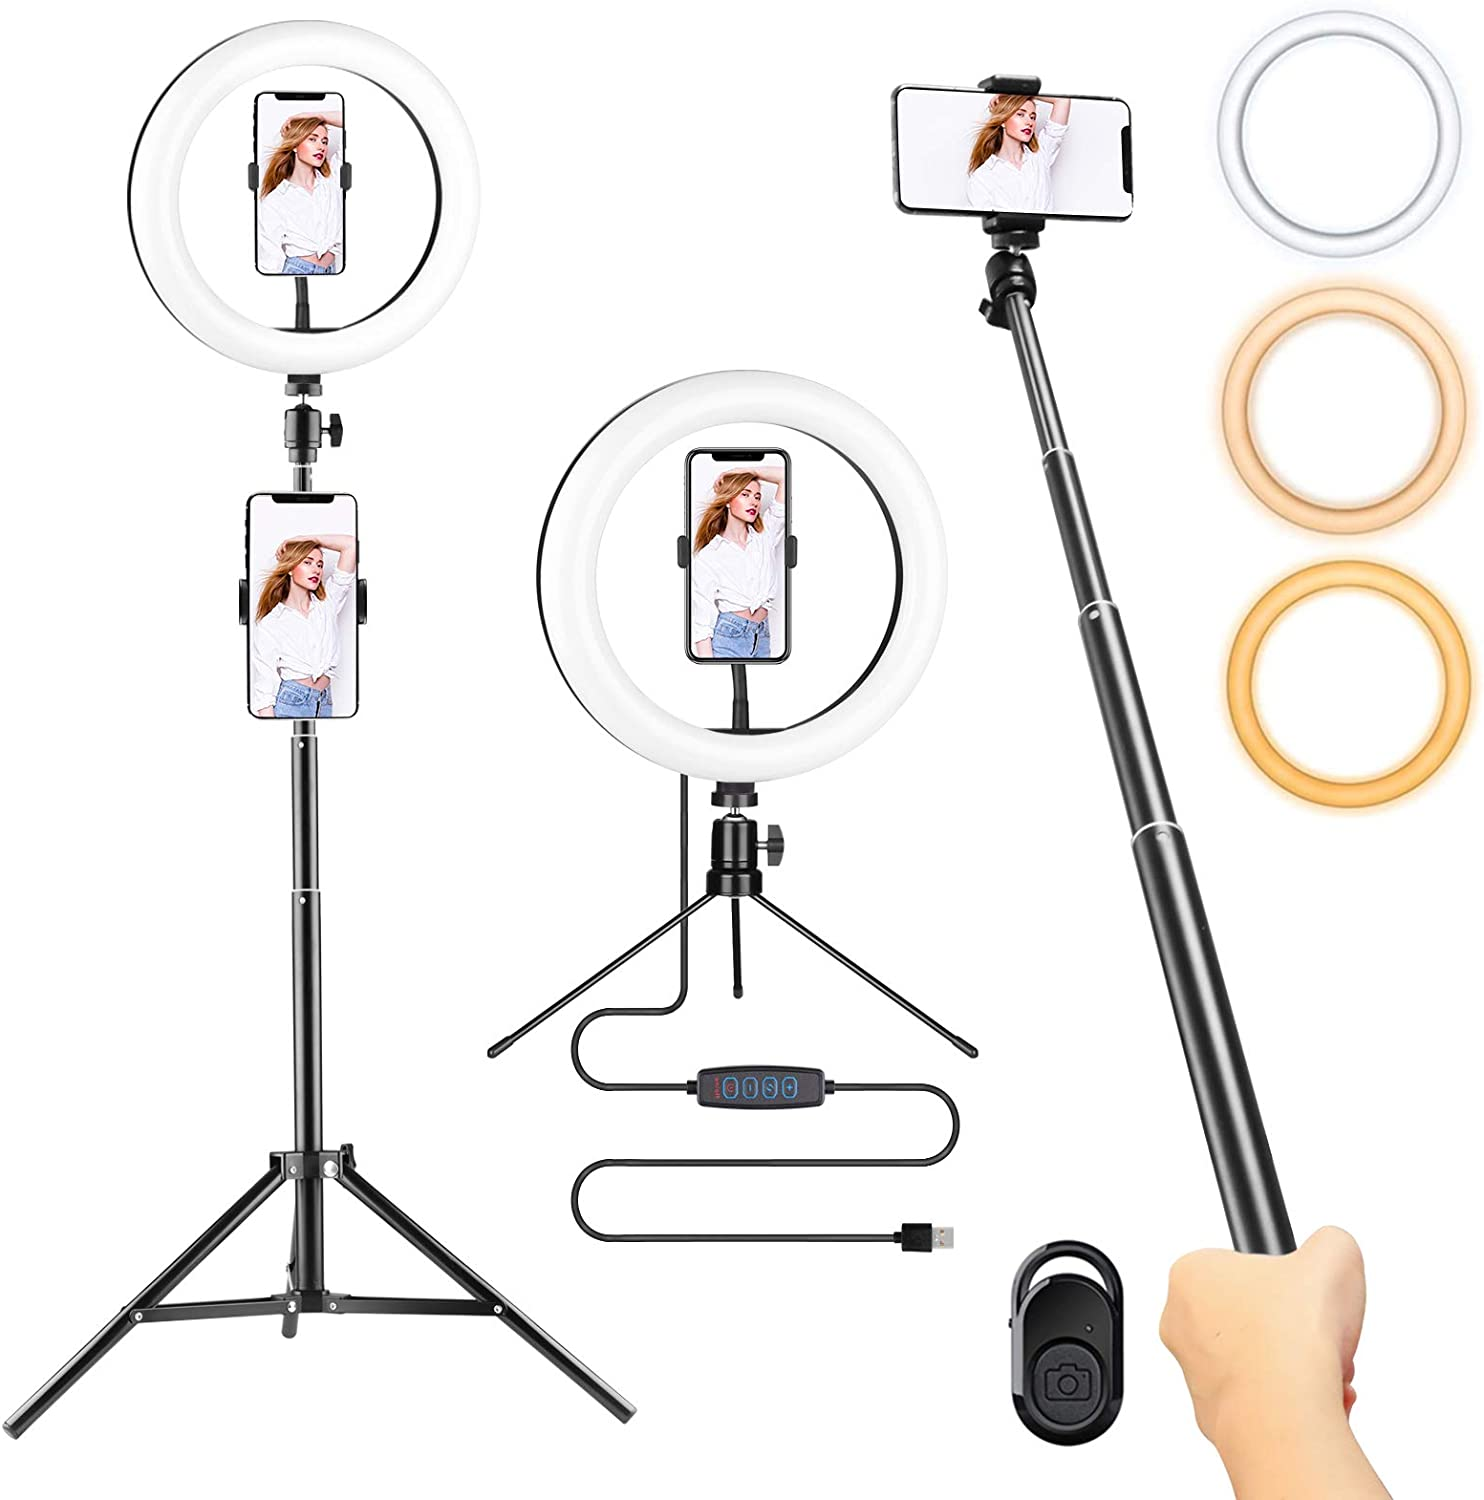 "10.2"" Ring Light with Stand Adjustable Floor and Desk Tripod ,Bluetooth Selfie Stick 2 in 1 , 3 Colors and 10 Levels Dimming 3 Types Phone Holder for Photography ,Women Makeup, Live Stream,Study"